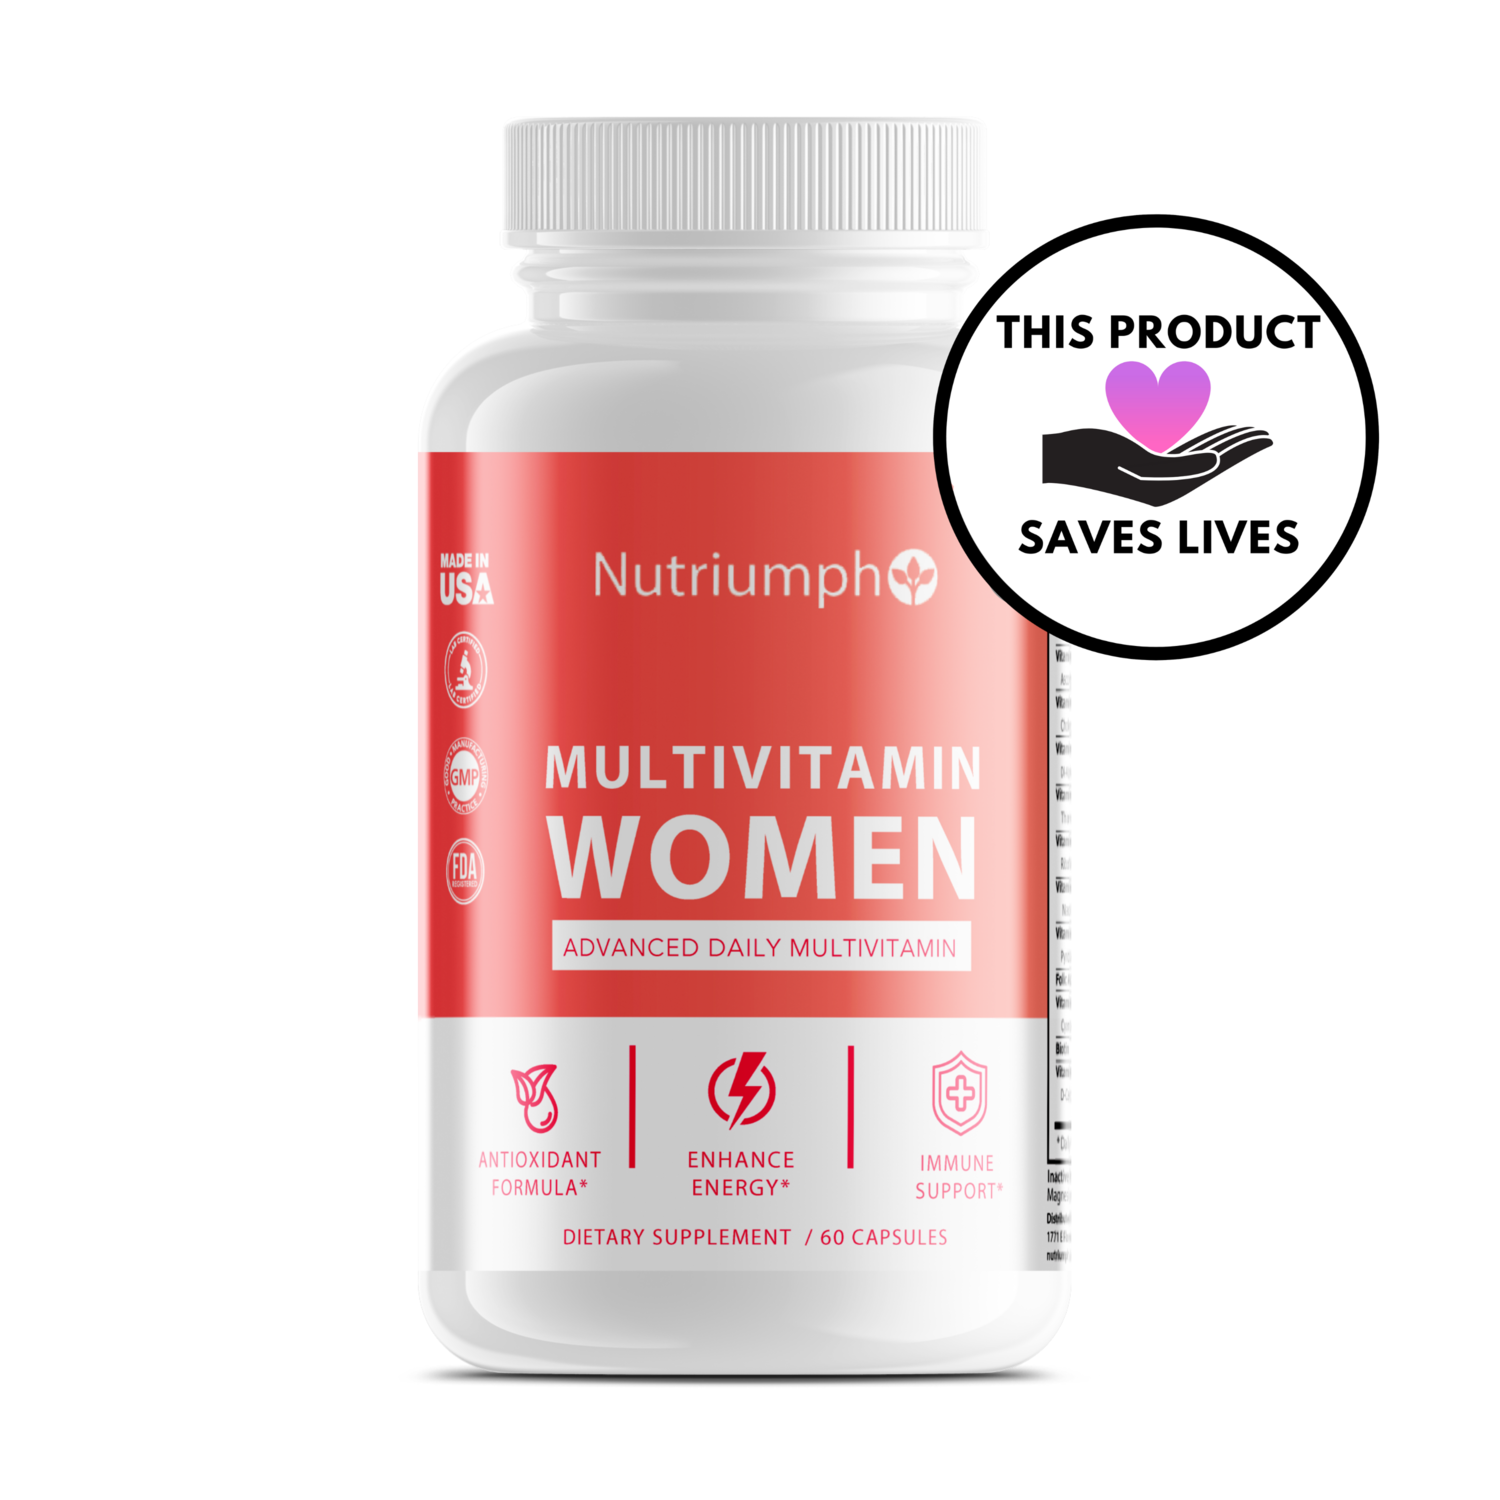 MULTI WOMEN - Advanced Daily Multivitamin